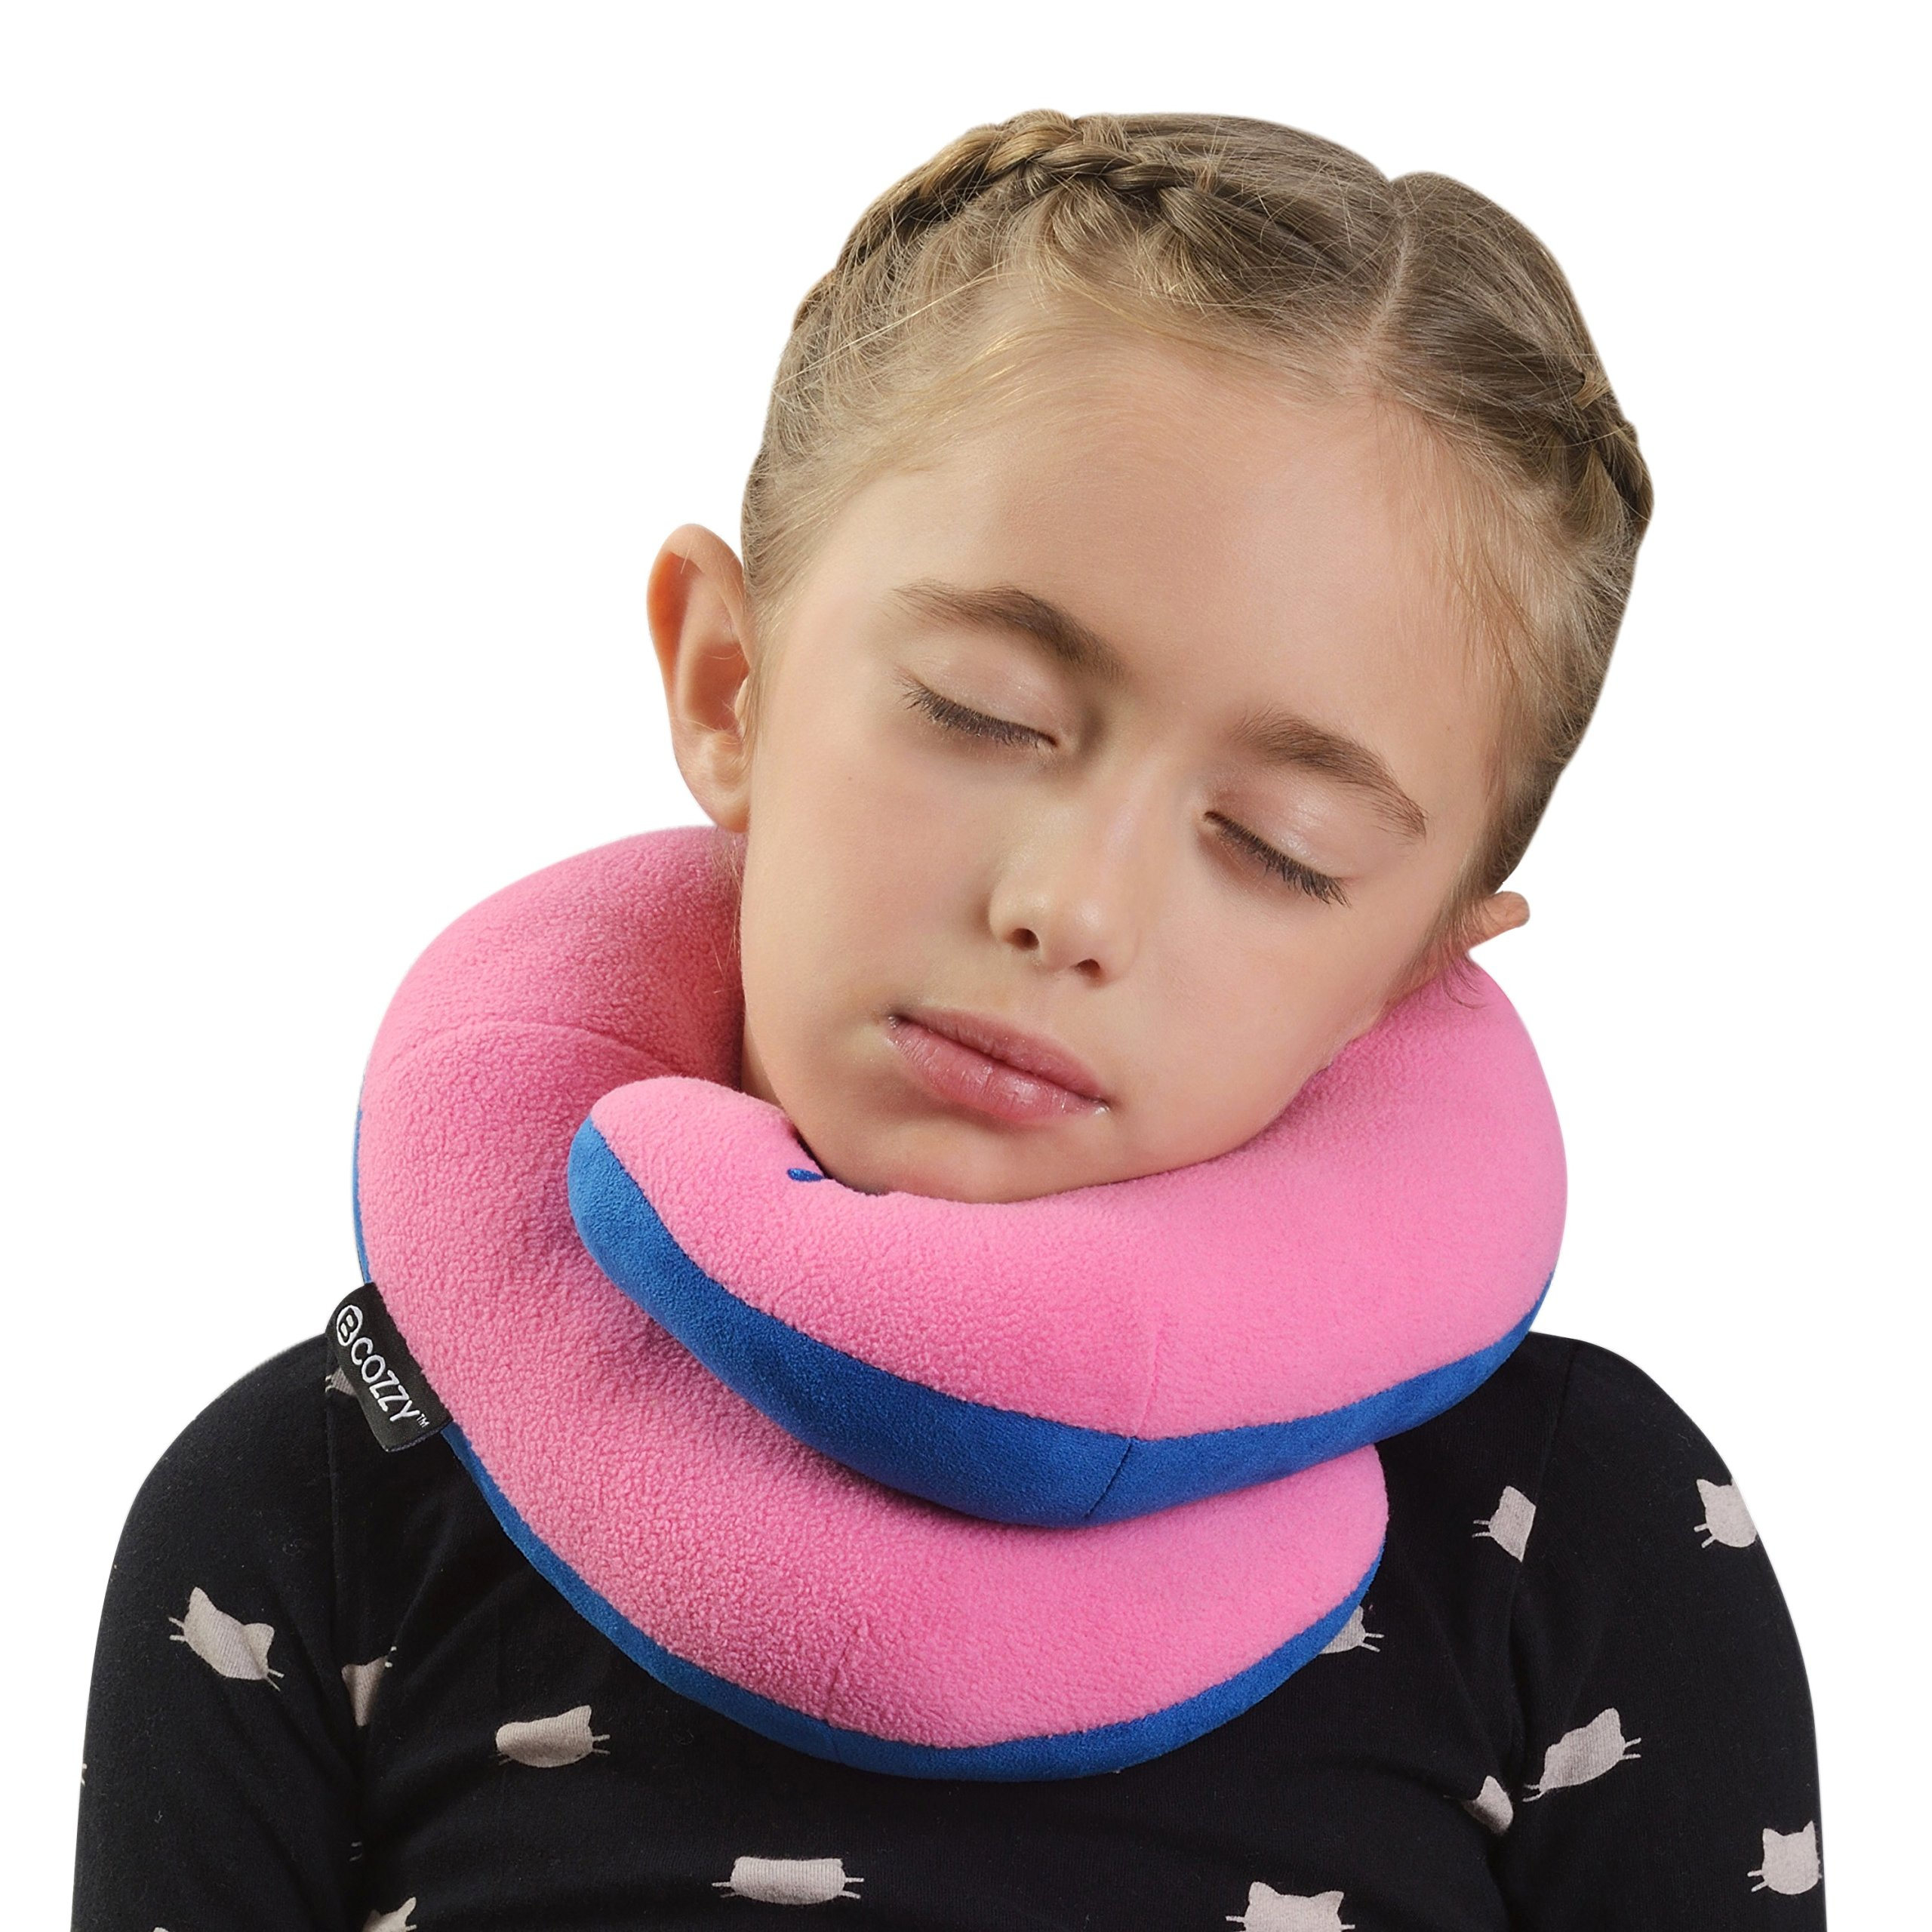 BCOZZY Kids Chin Supporting Travel Neck Pillow - Supports the Head, Neck Chin in A Patented Product. CHILD Size, PINK